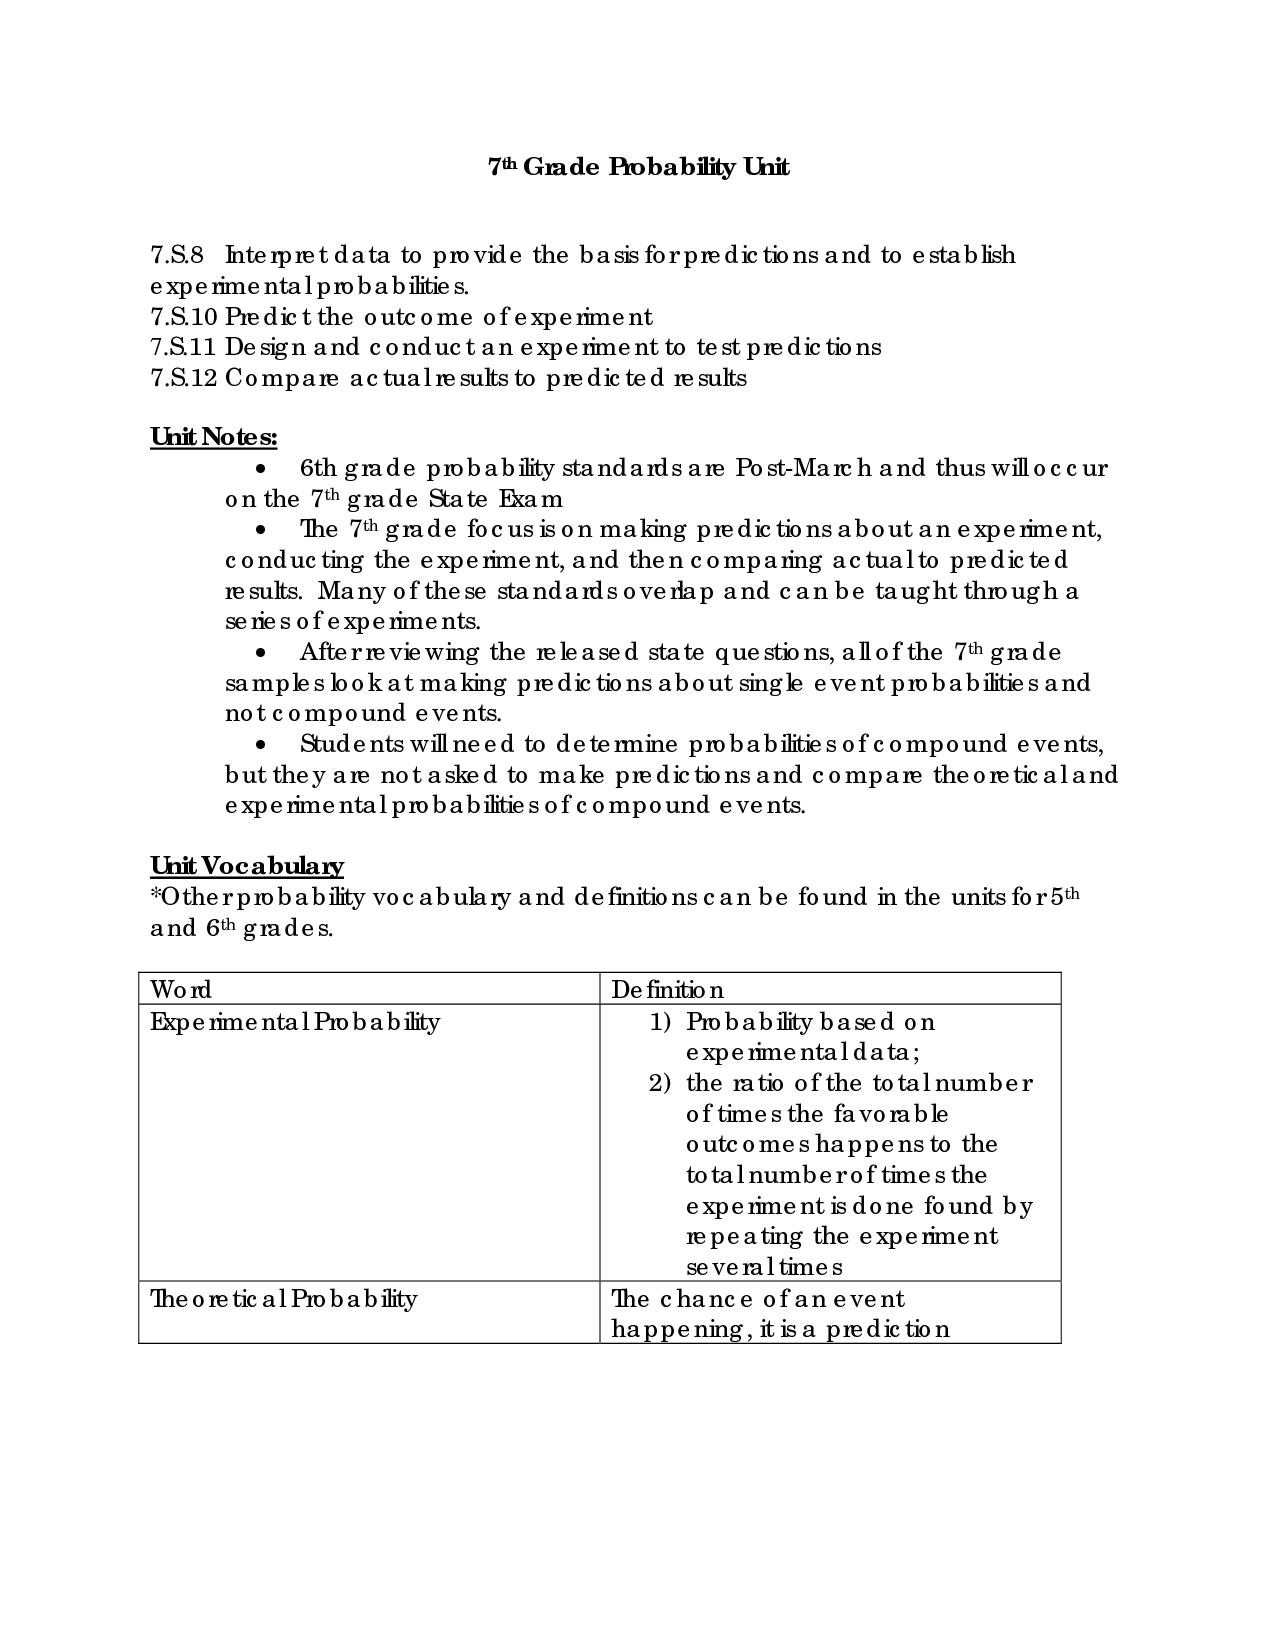 17 Best Images Of 9th Grade Probability Worksheets